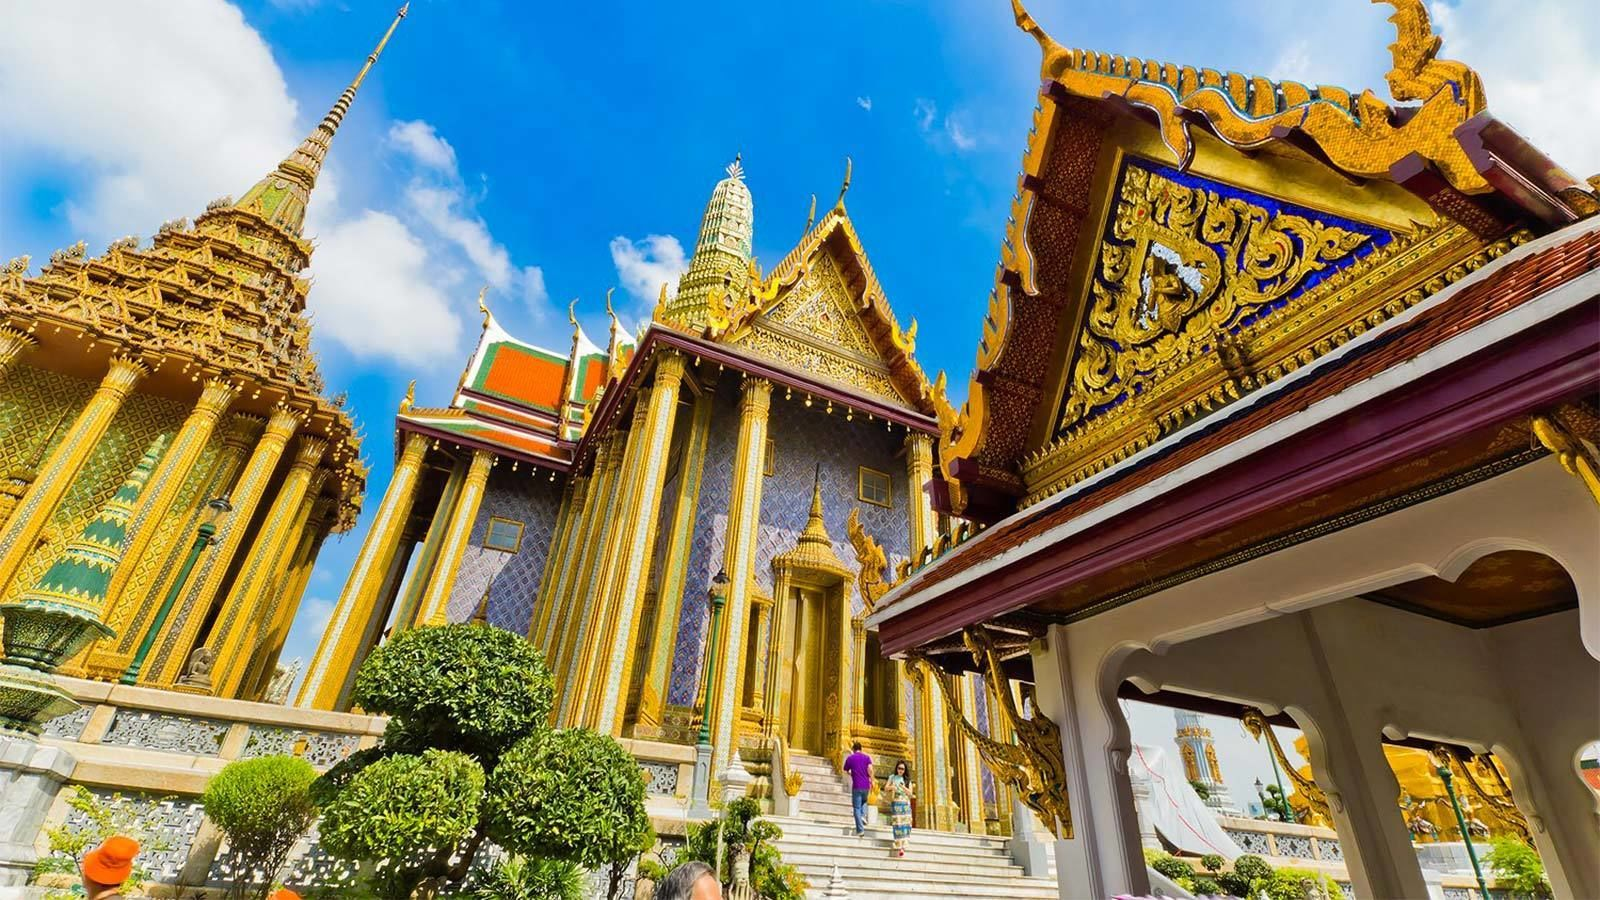 Close view of the Grand Palace in Thailand